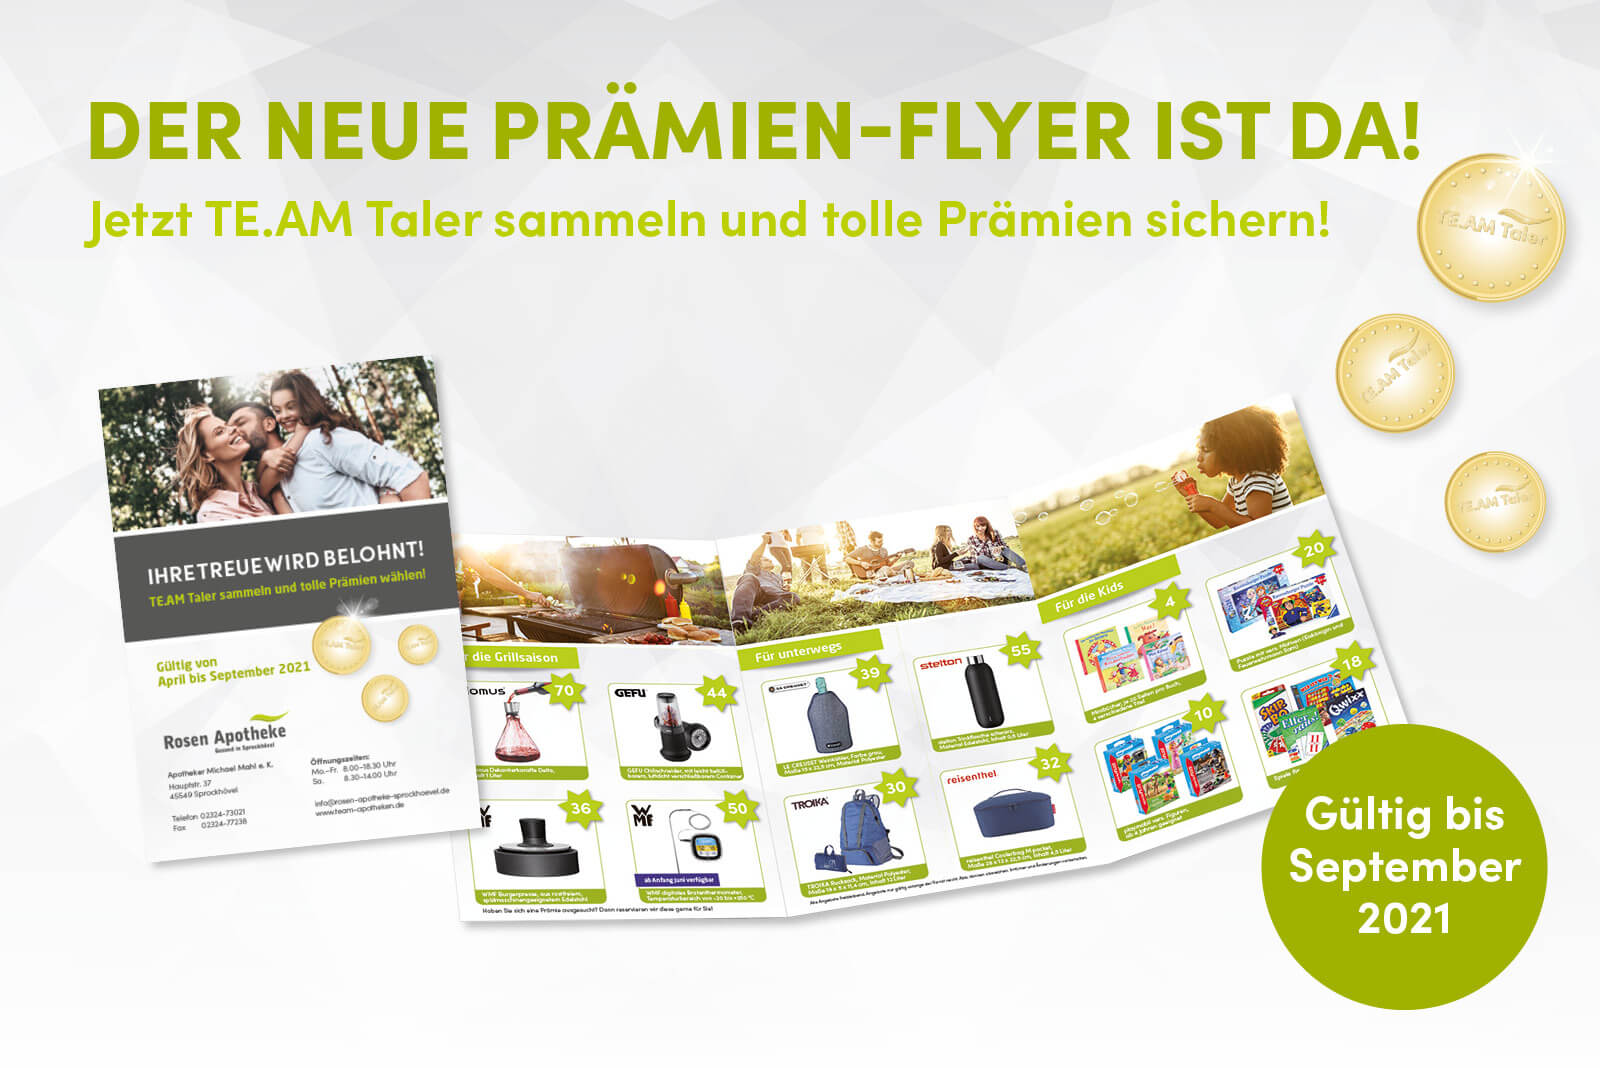 Prämien-Flyer April-September 2021 Rosen Apotheke